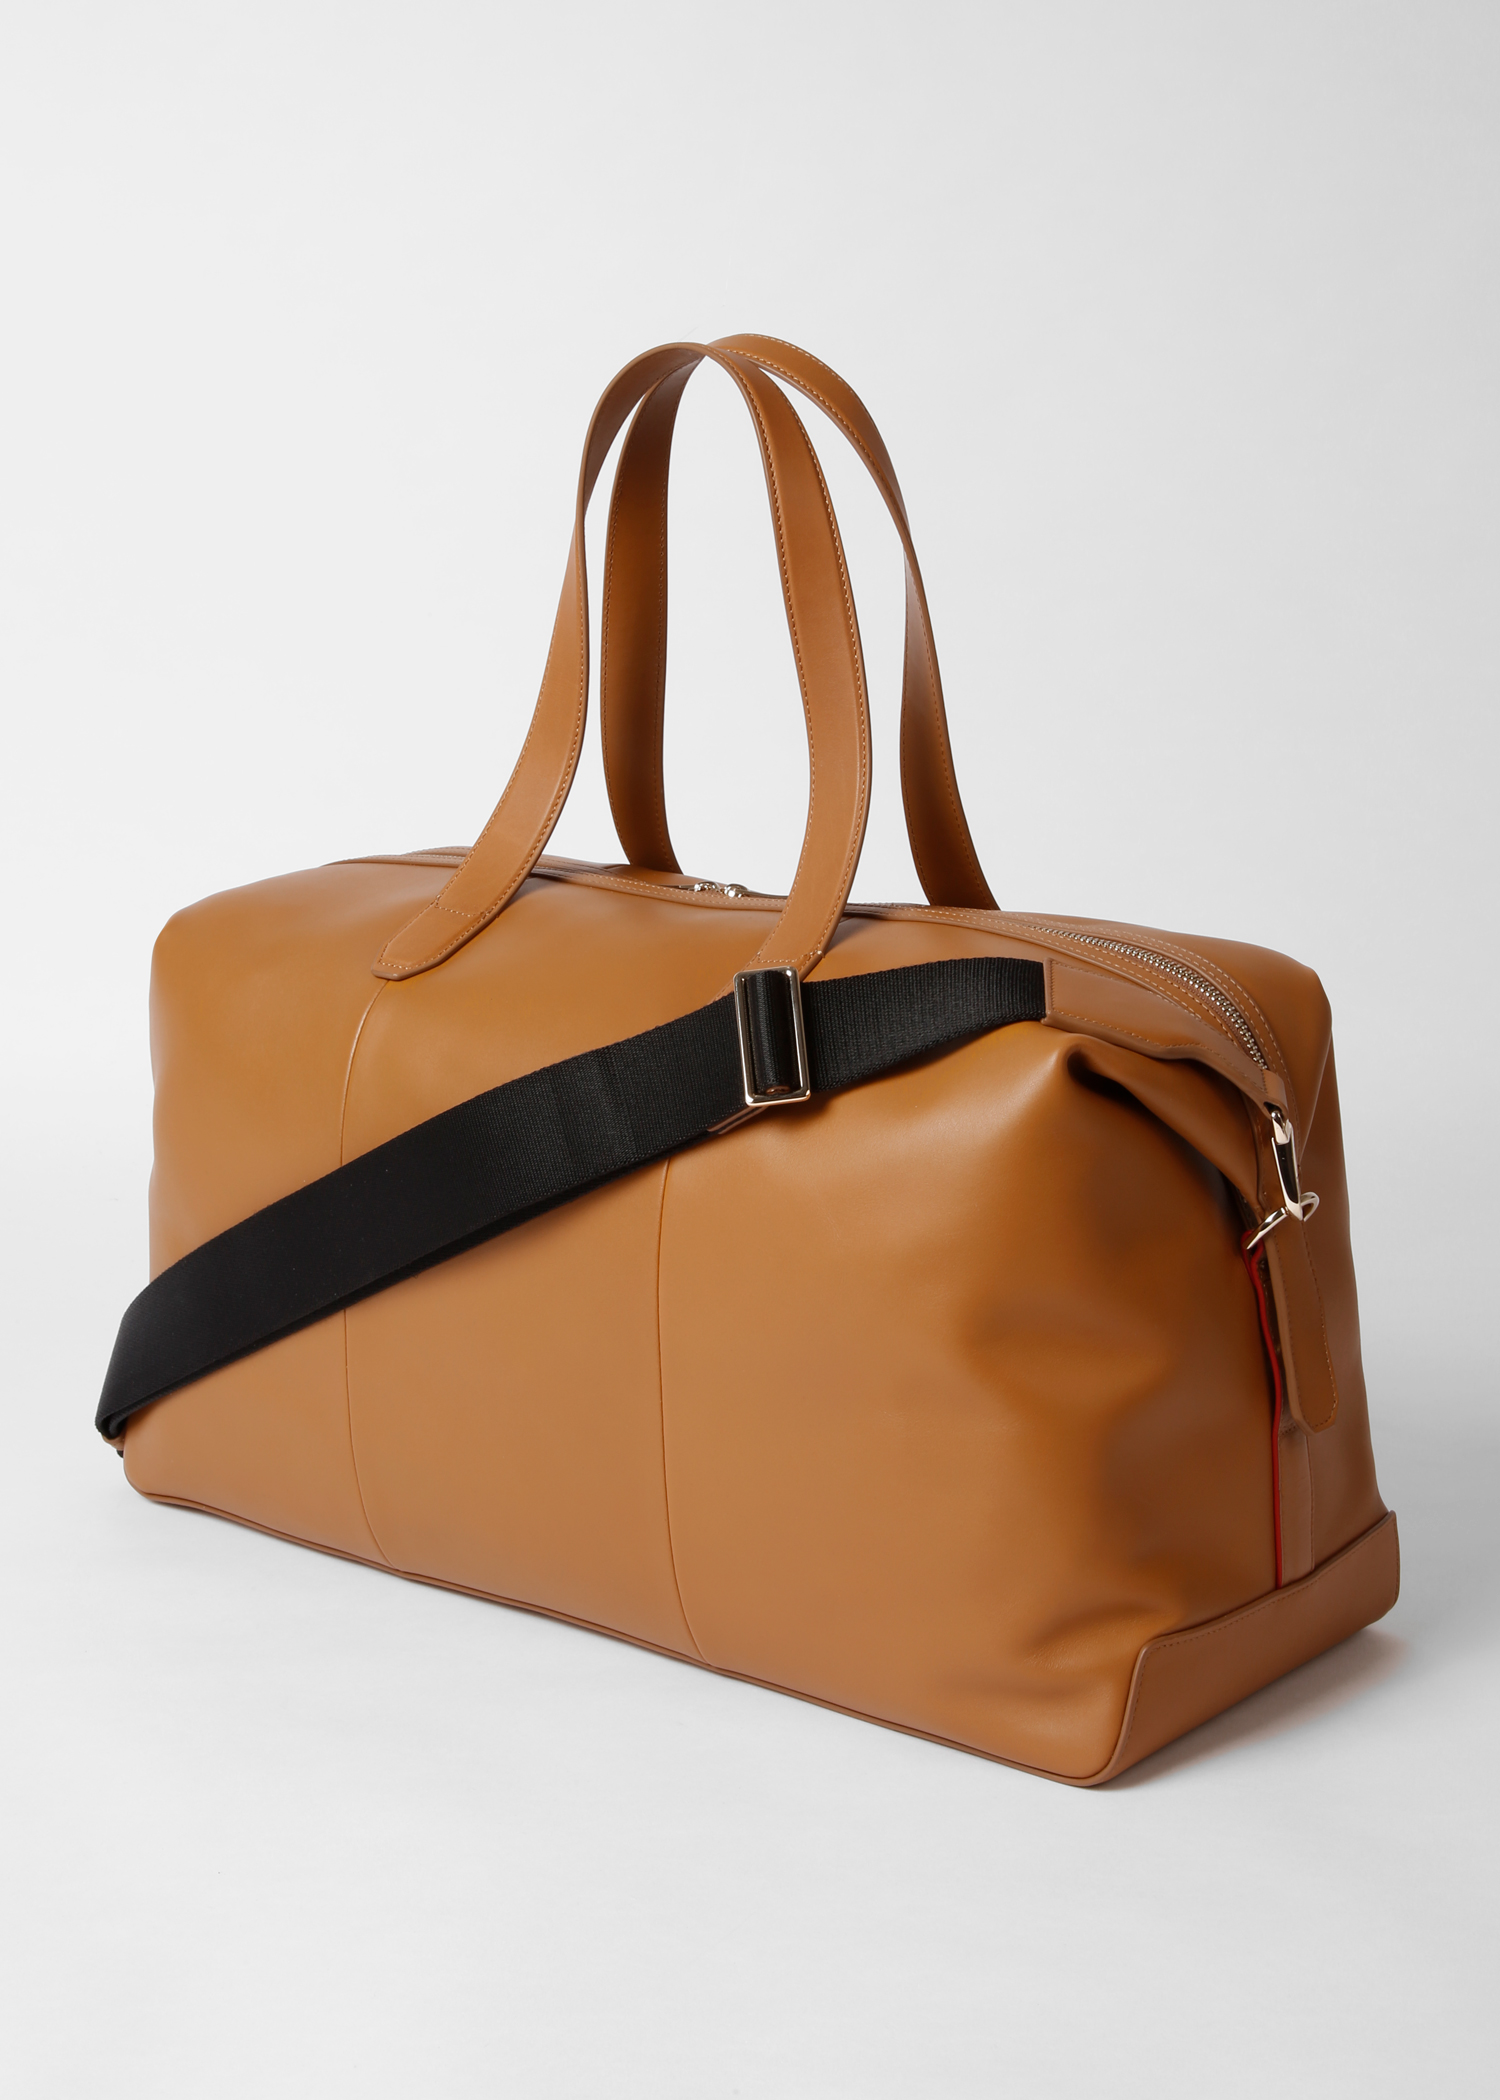 97ef29fd51d Back View - Men's Tan Soft Leather Weekend Bag Paul Smith